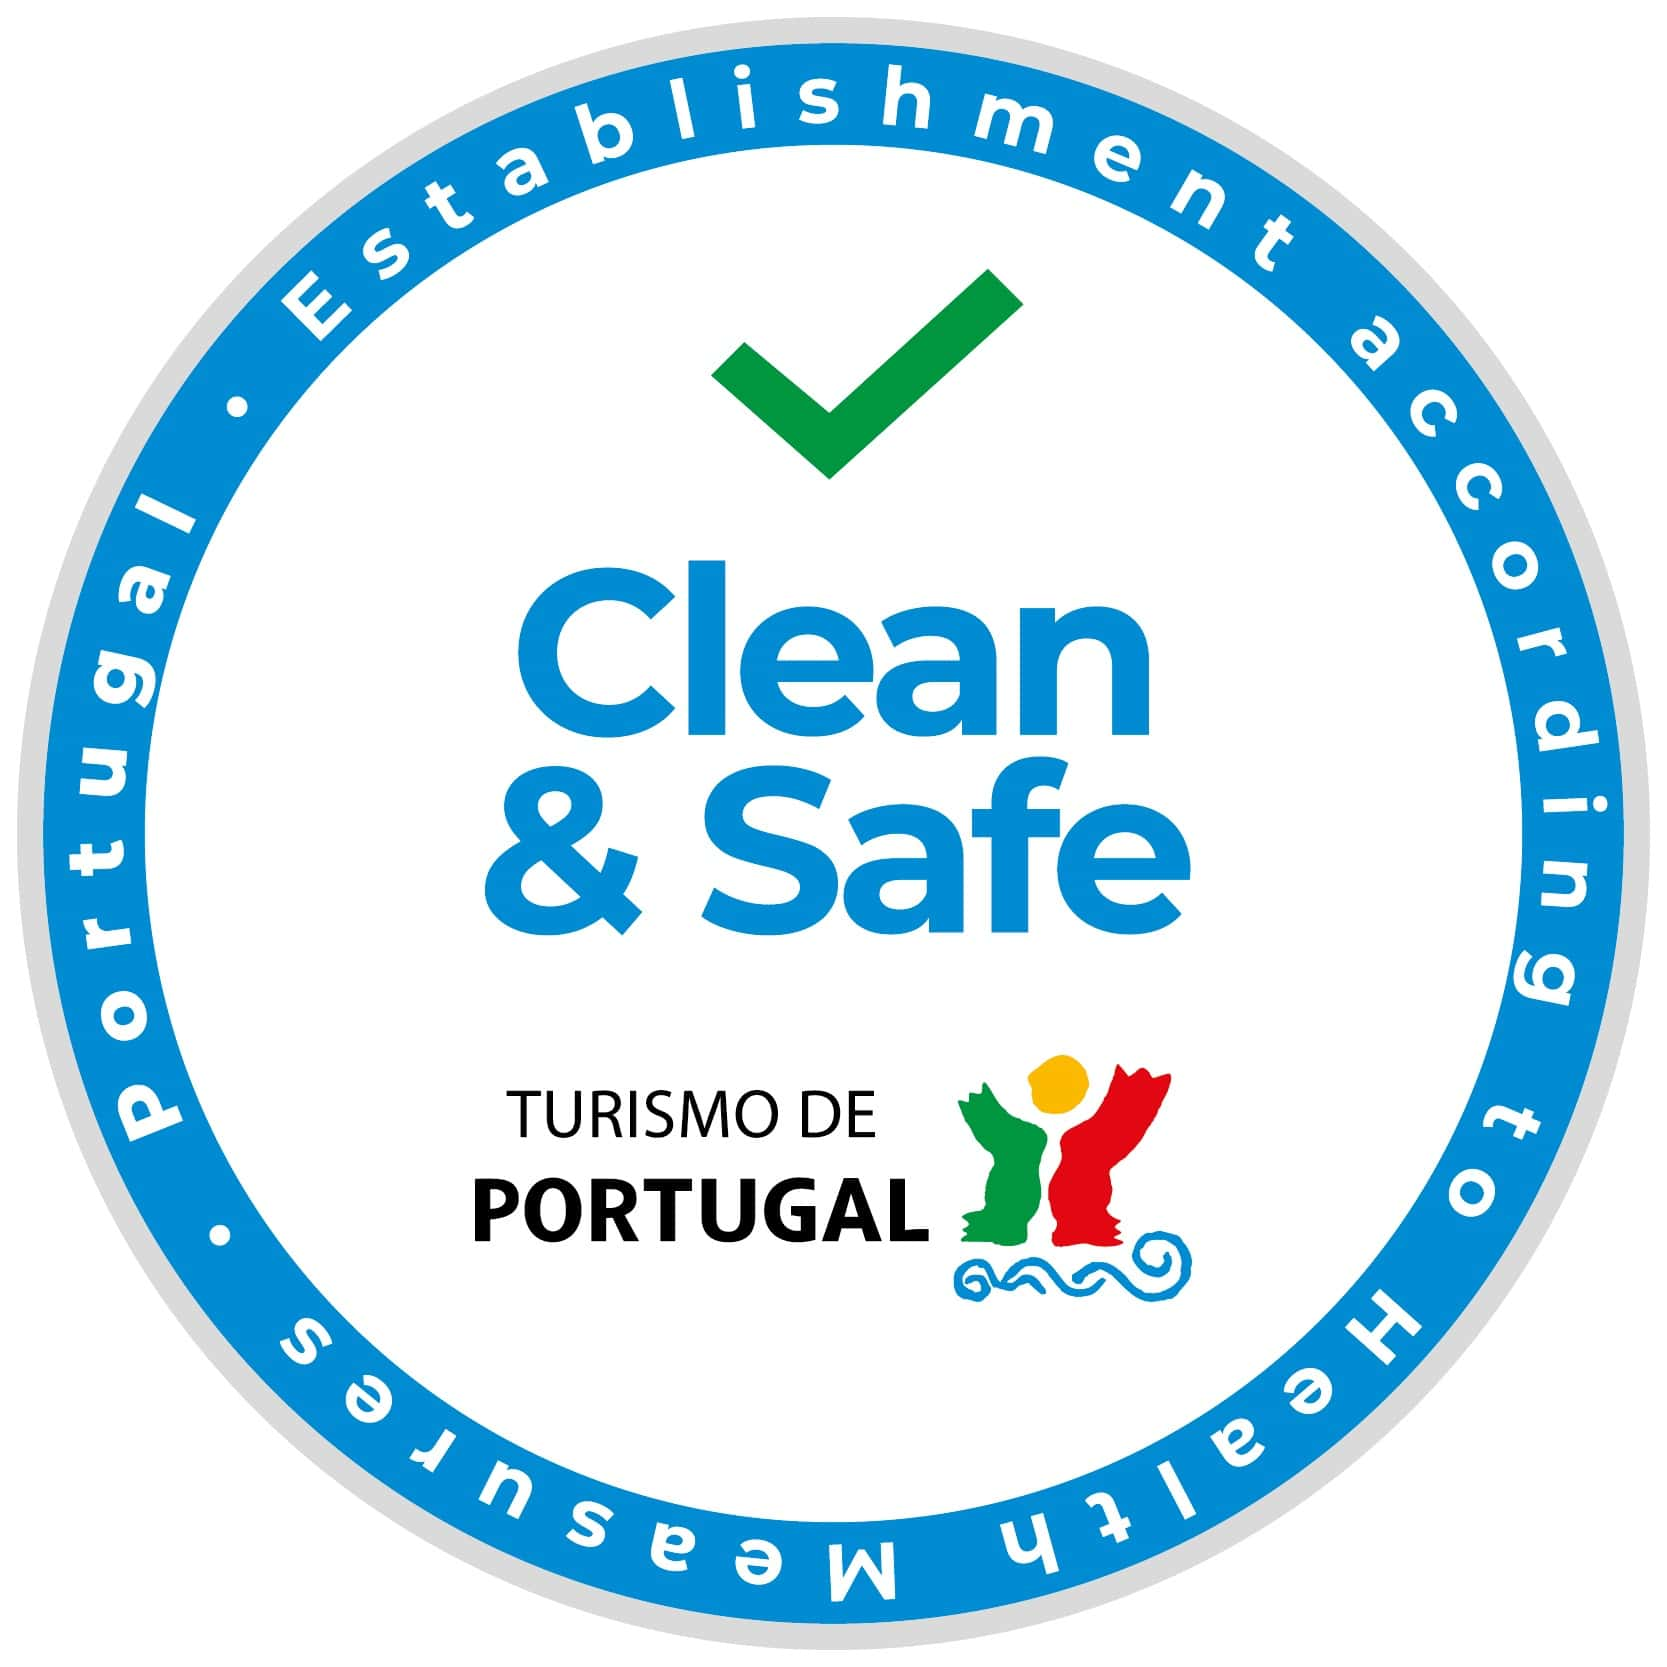 treasures of lisboa food tours in lisbon is recognised as clean and safe